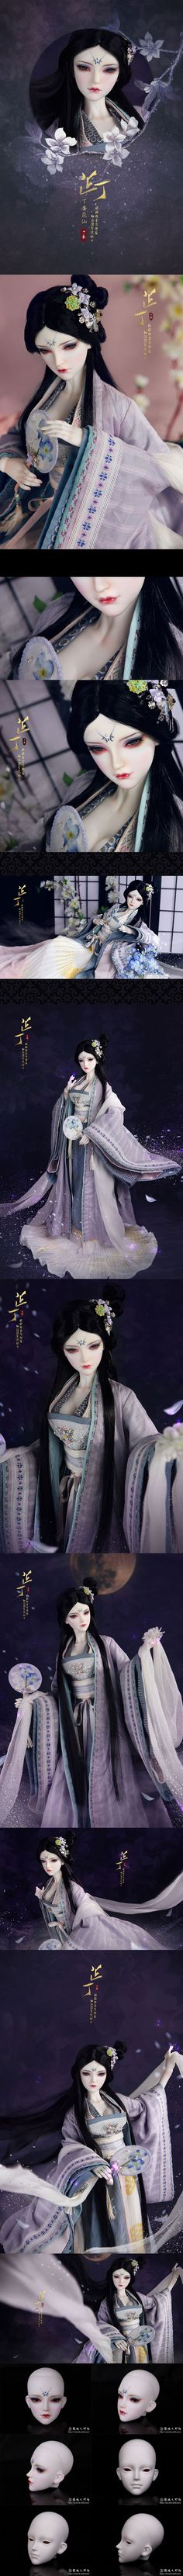 BJD 【Limited Edition】69cm Girl Lilac Fairy-ZhiDing Limited 60 Sets Boll-jointed doll_68-75cm dolls_LOONG SOUL_DOLL_Ball Jointed Dolls (BJD) company-Legenddoll